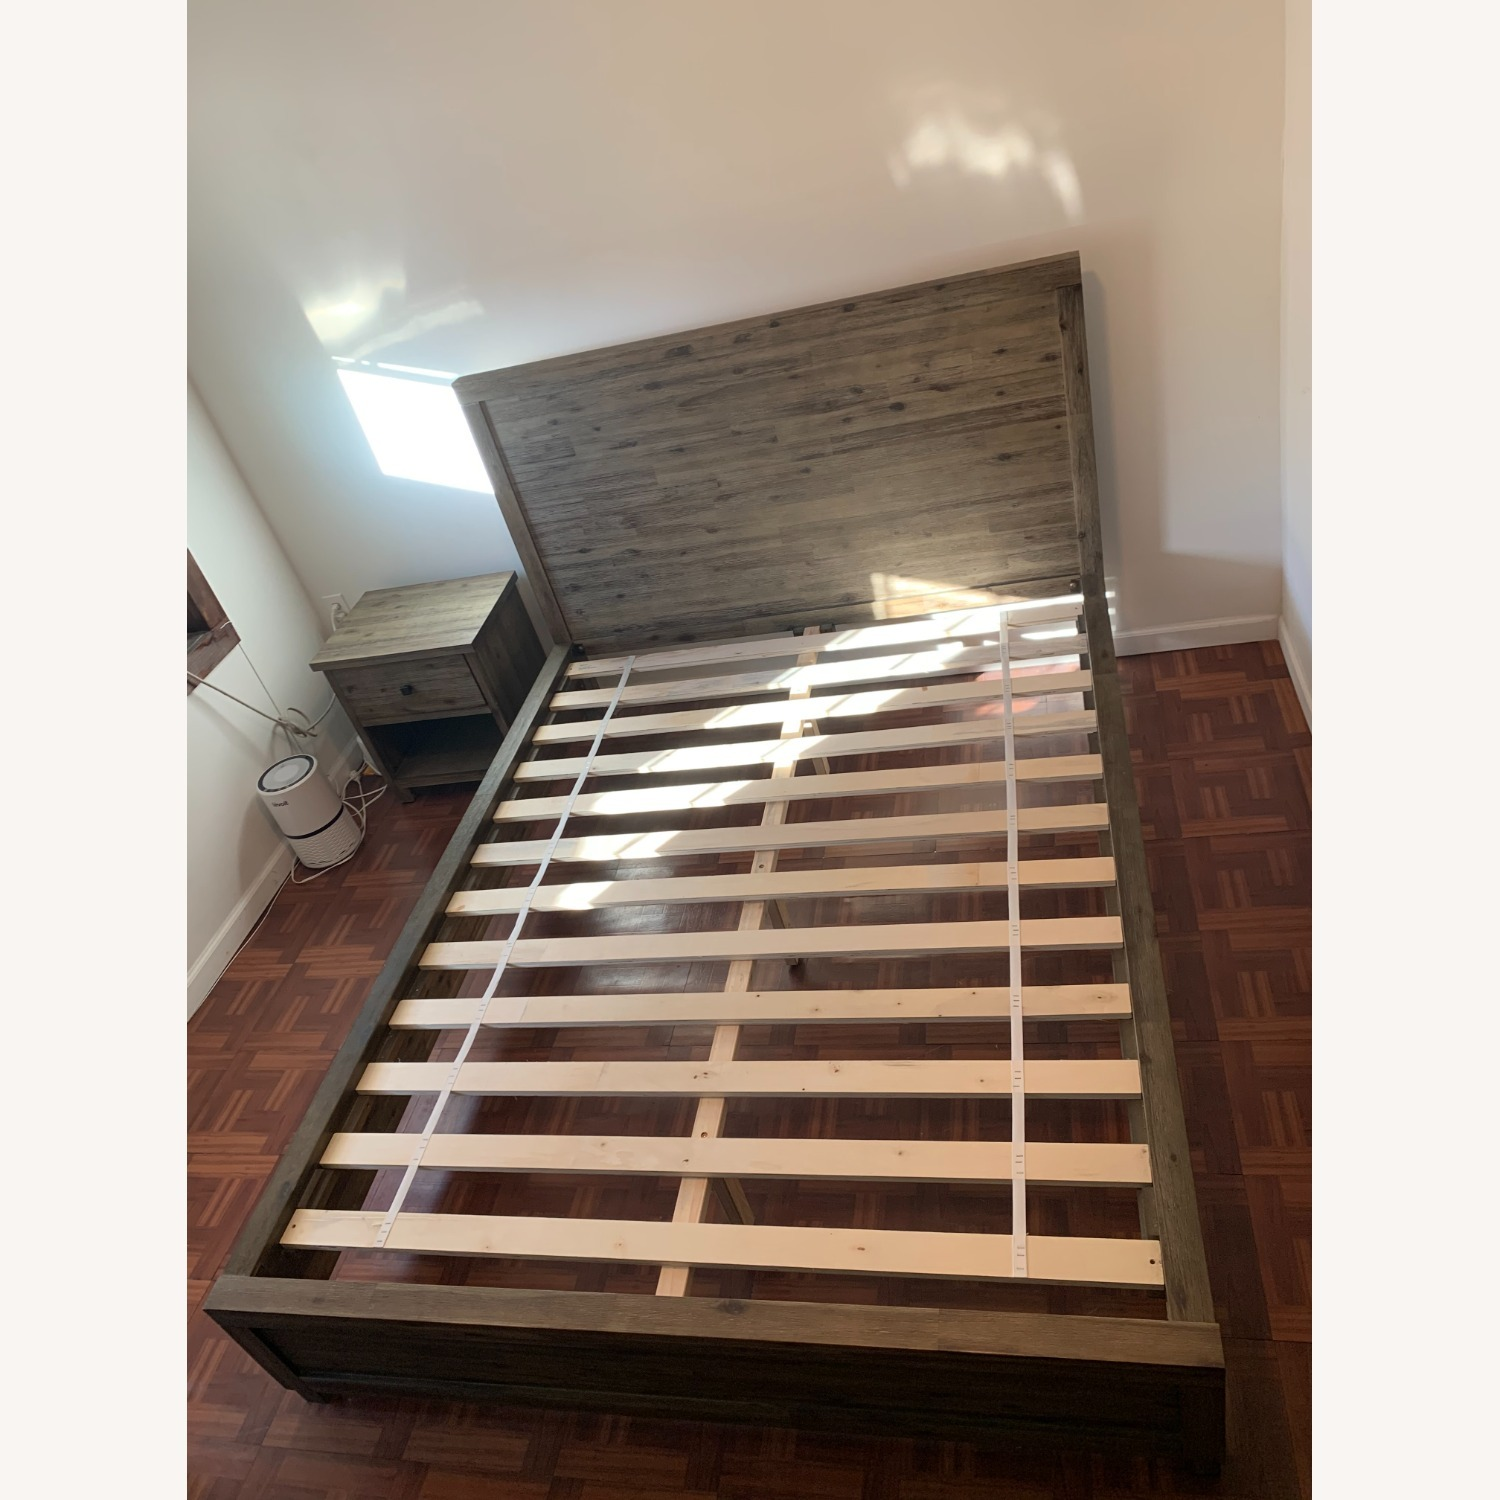 Macy's Canyon Queen Platform Bed - image-1